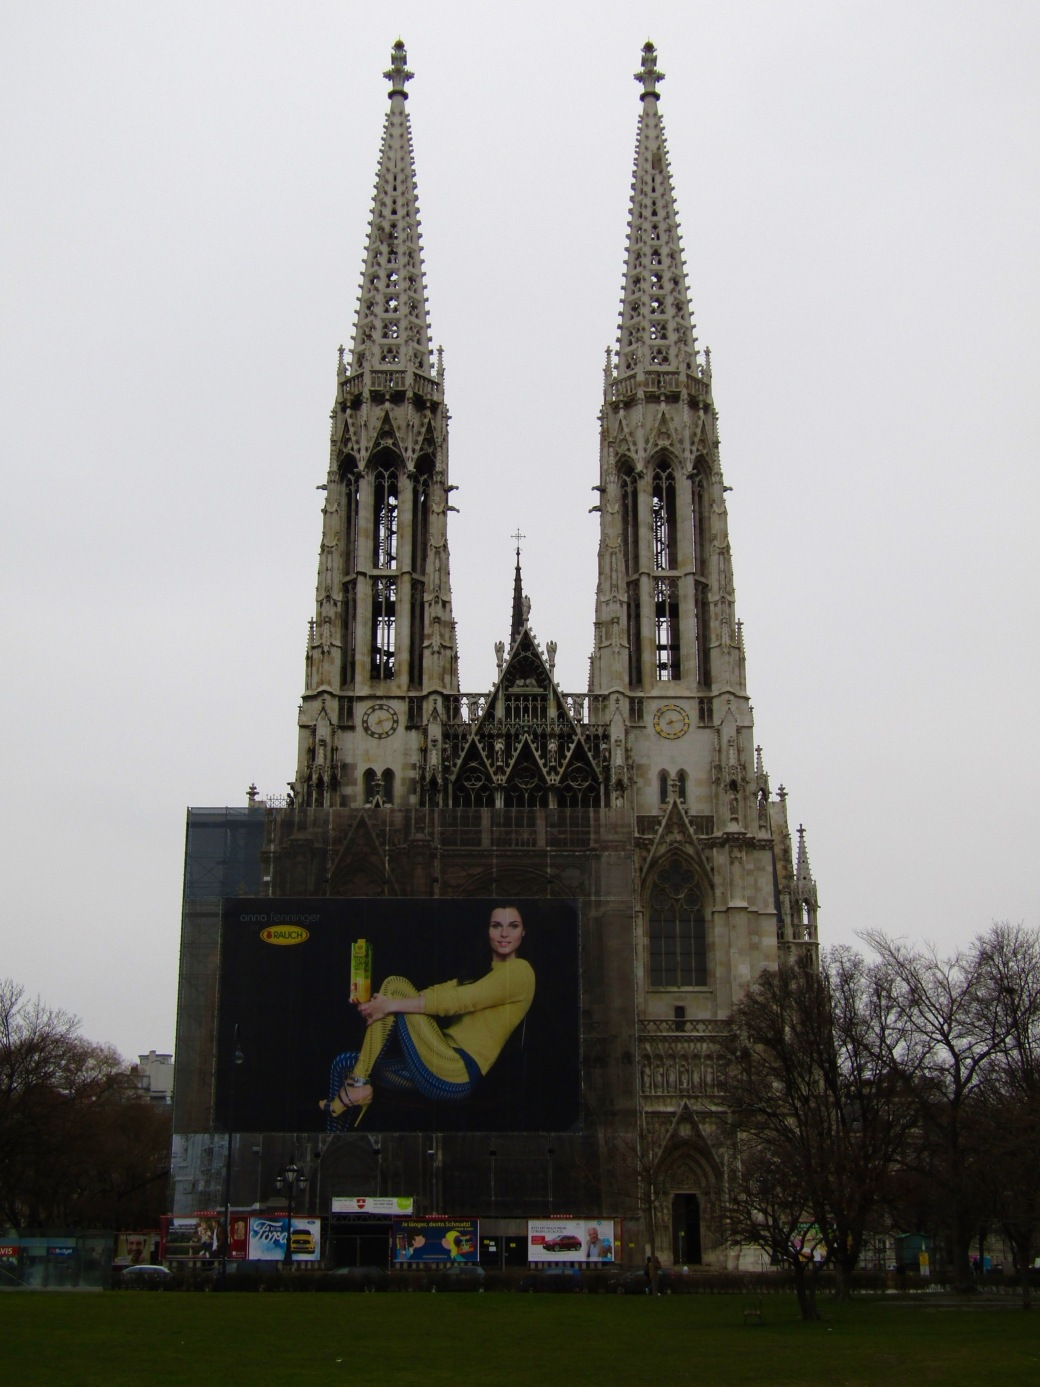 The Votivkirche (Votive Church) is currently under renovation.